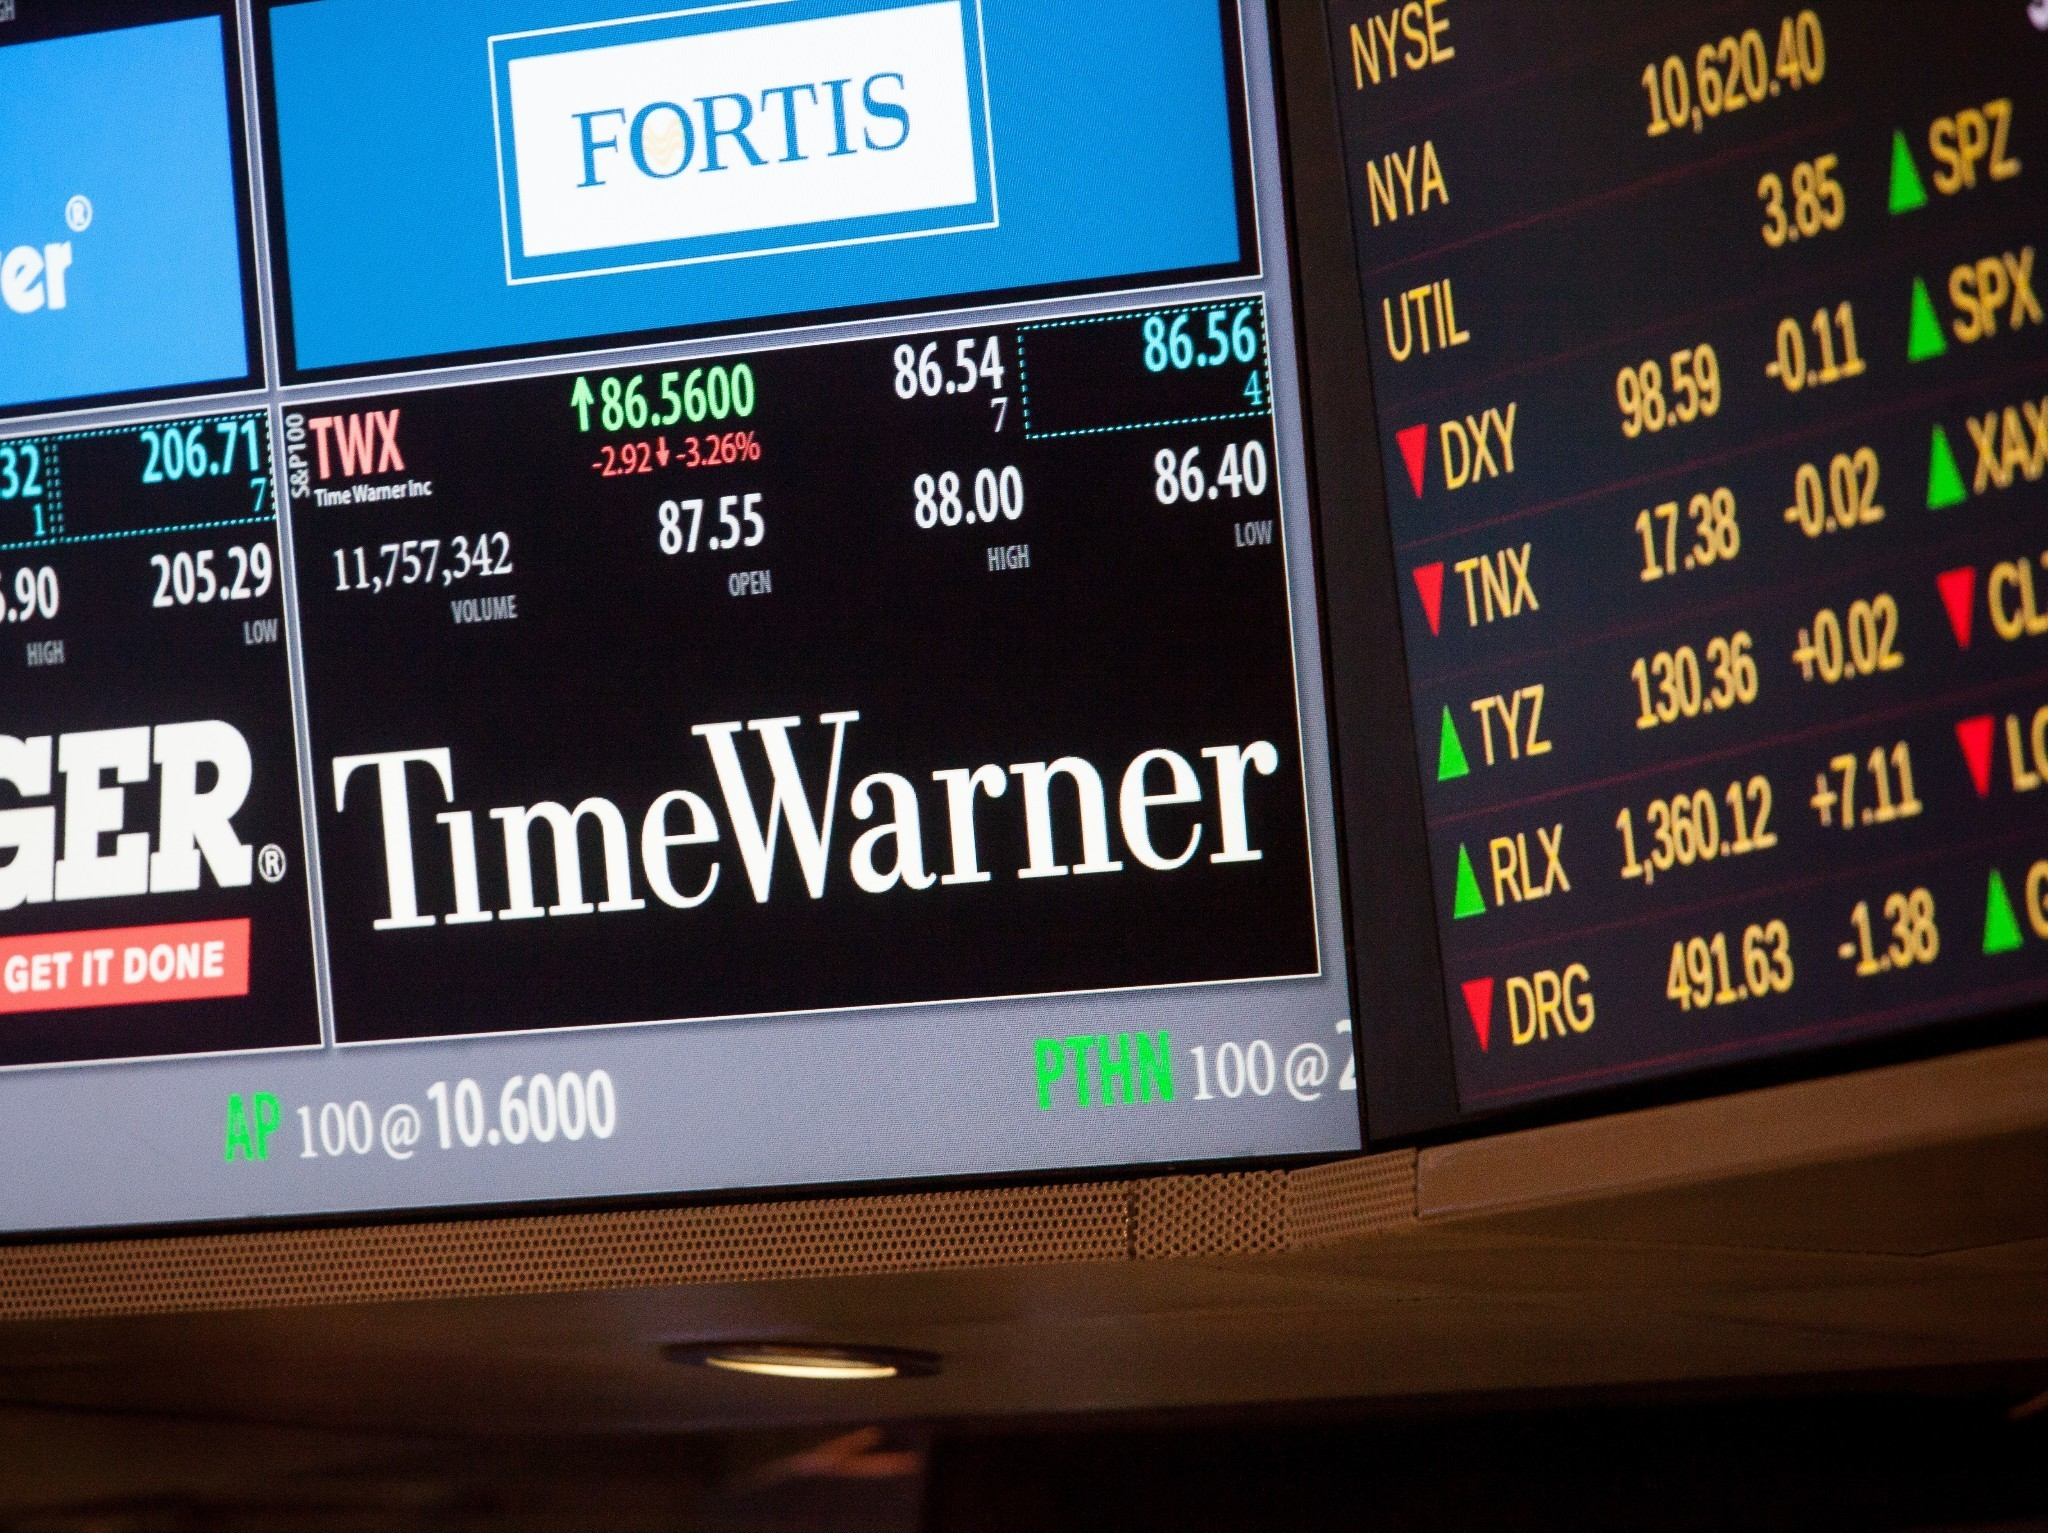 The AT&T-Time Warner Merger: What Are The Pros And Cons For Consumers?